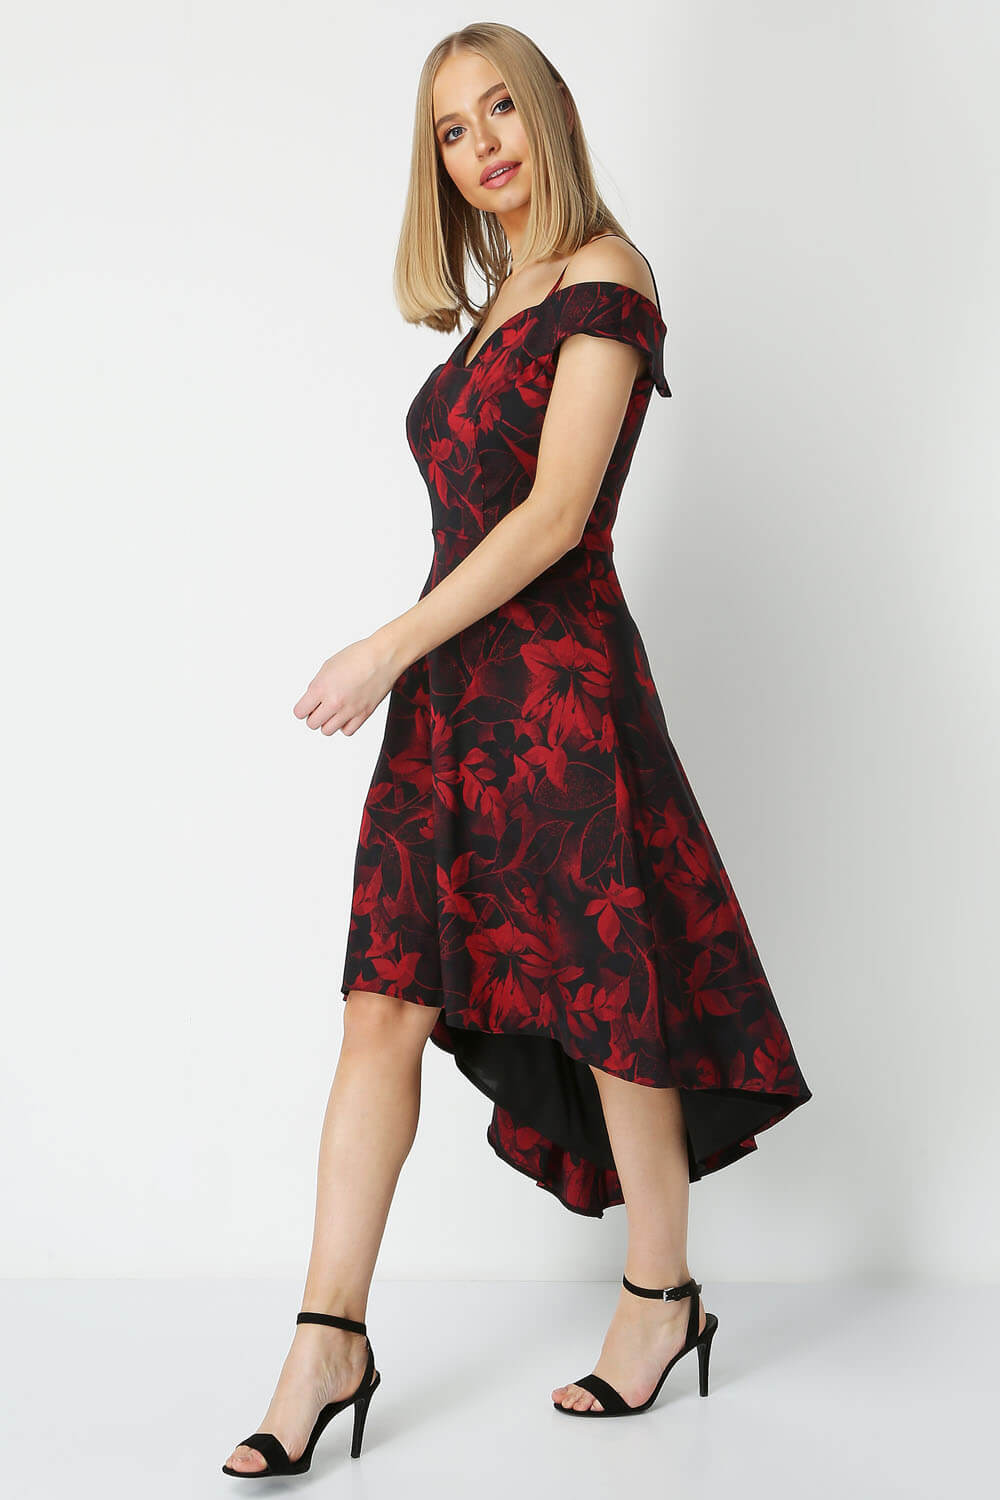 Roman-Originals-Women-Floral-Fit-and-Flare-Dress